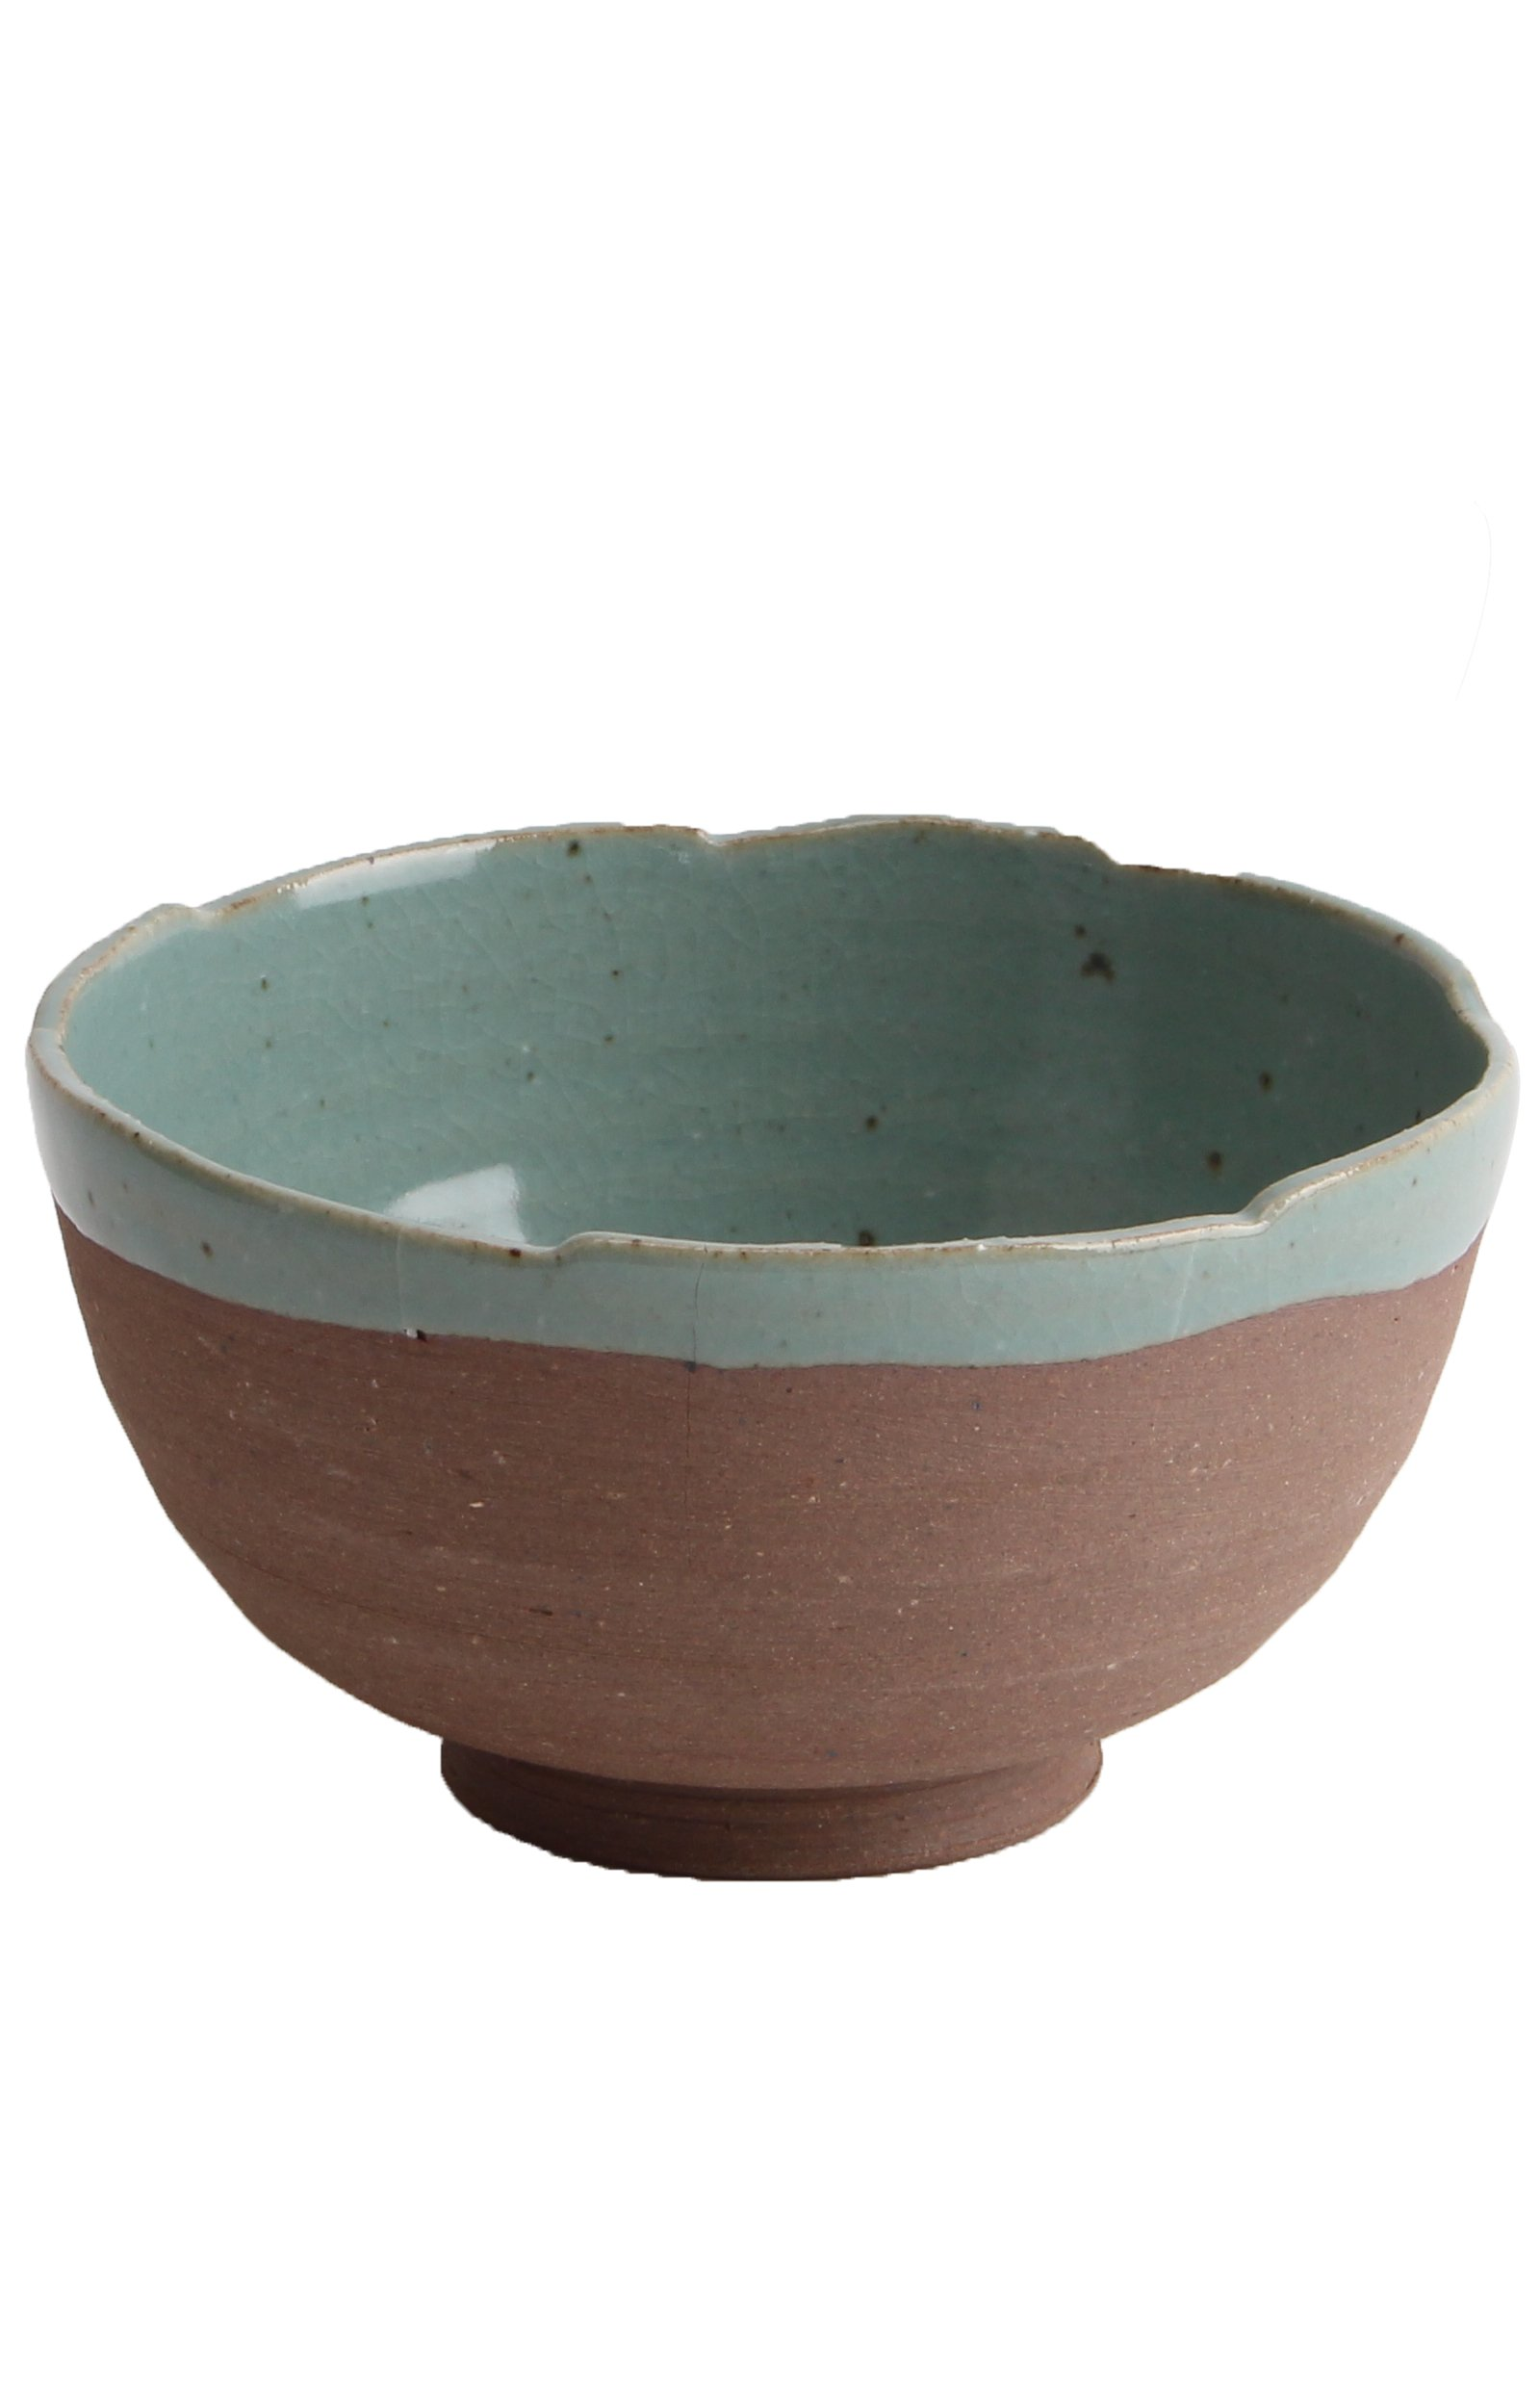 Yido Pottery Handmade Two-Tone Bowl, Medium(12.5oz), Cheongyeon